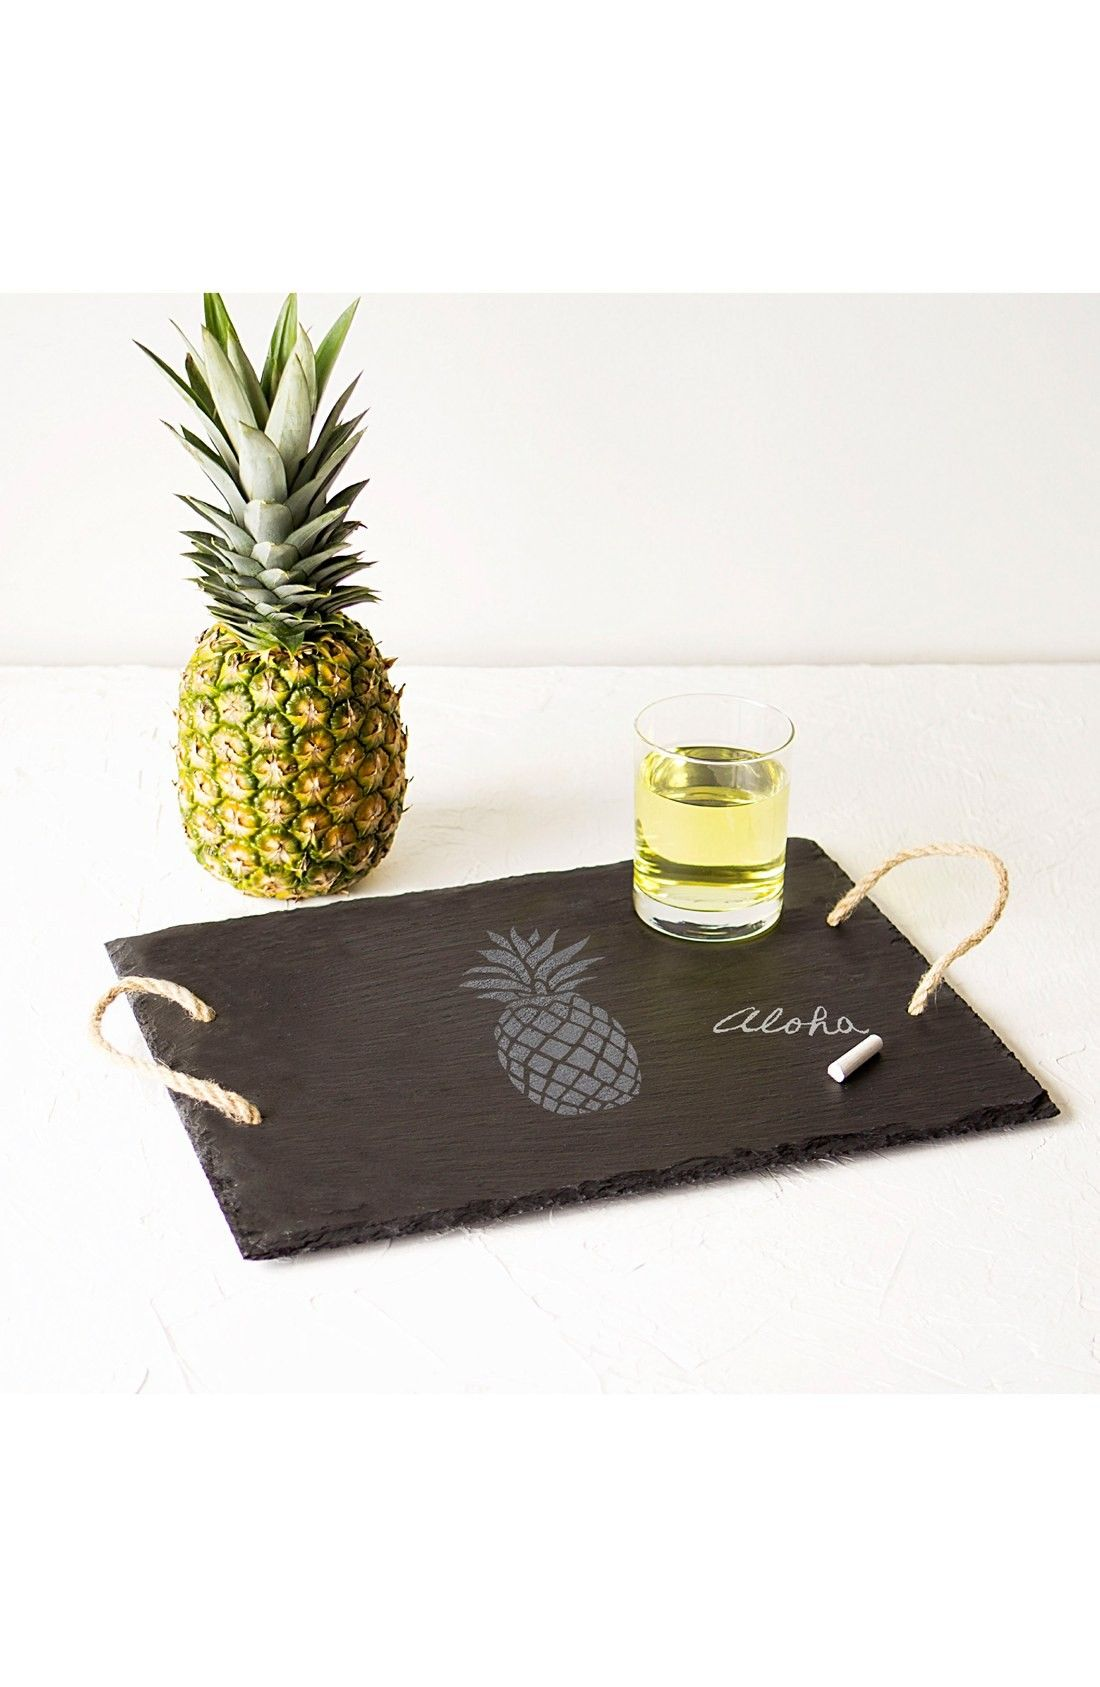 Pineapple slate serving tray pineapples pinterest slate and trays